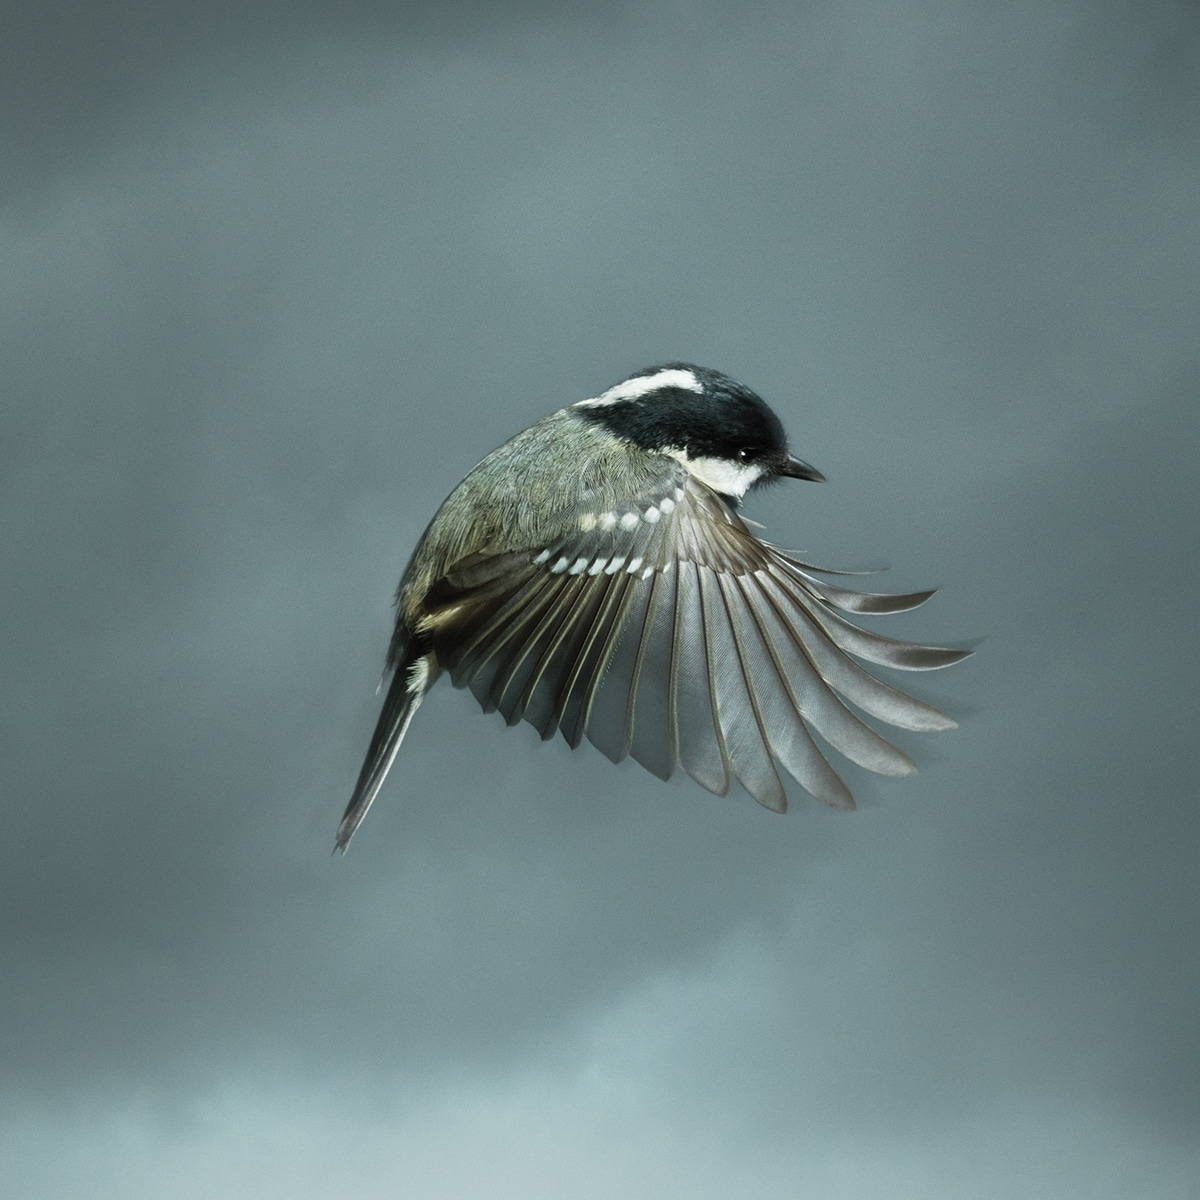 Photograph British Coal Tit Bird In Flight